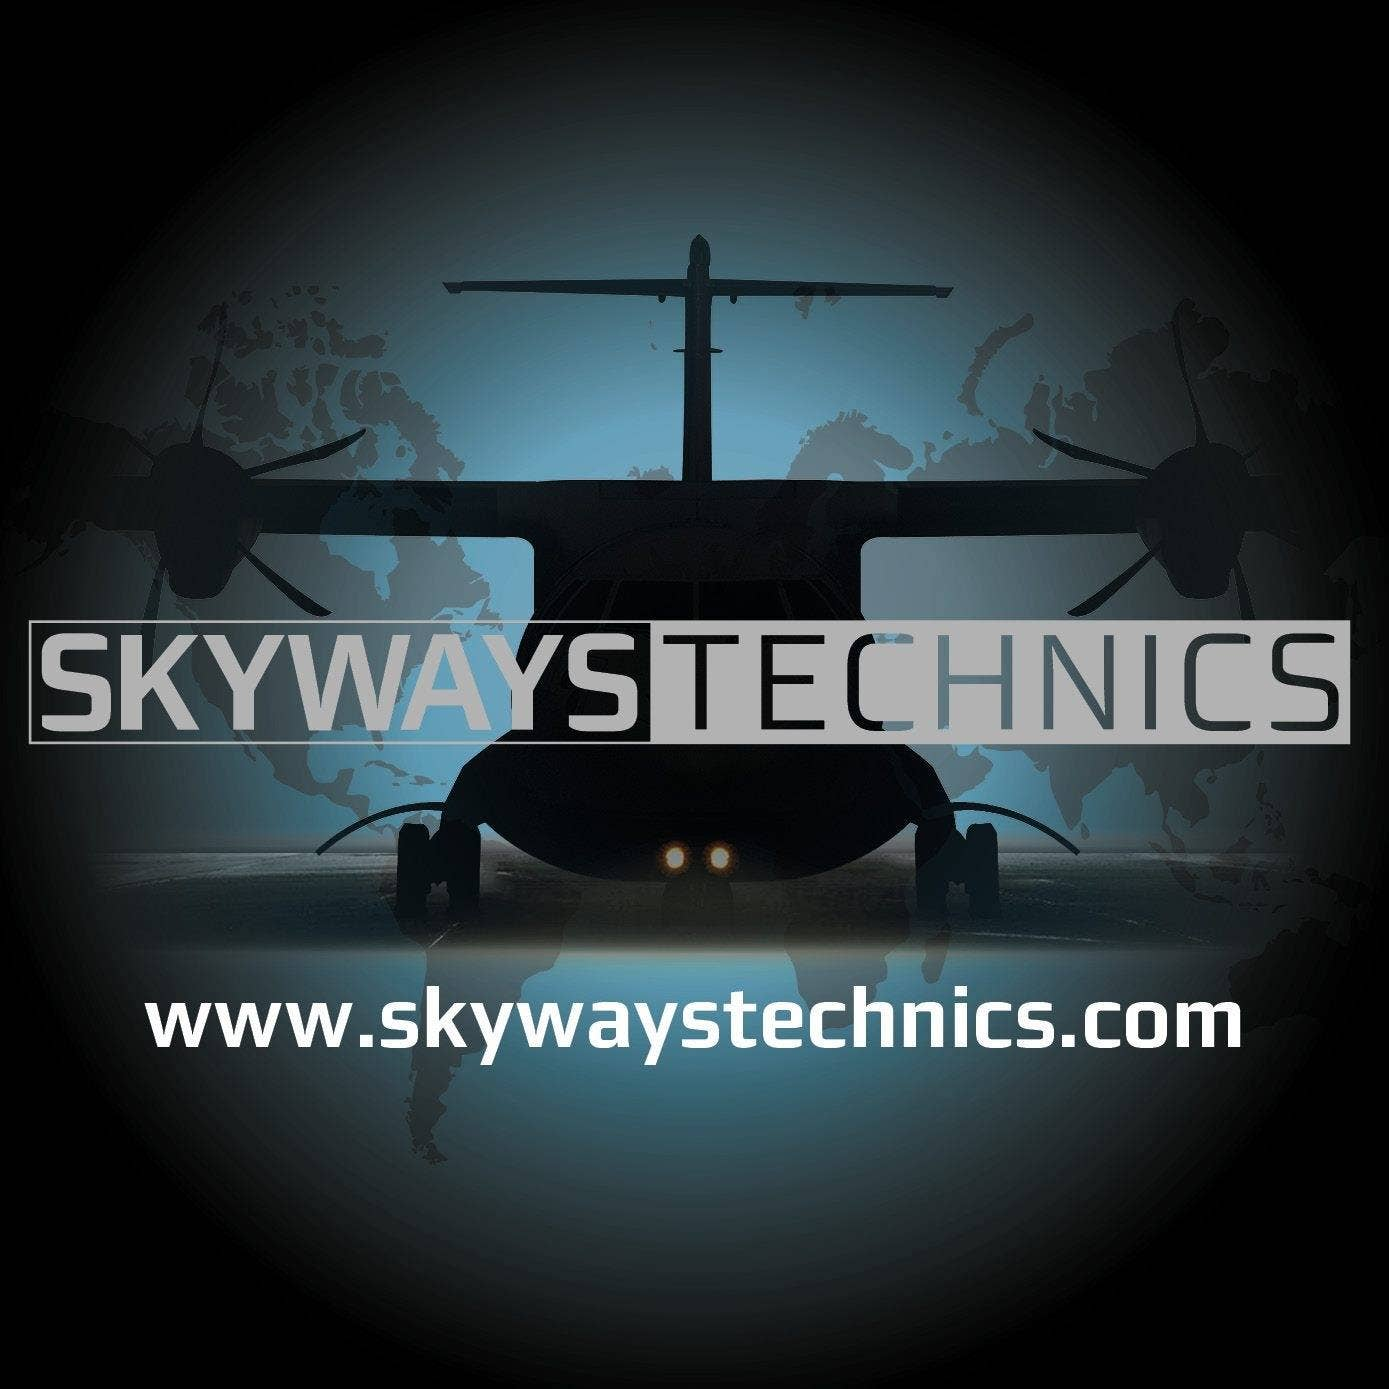 SKYWAYS TECHNICS AS